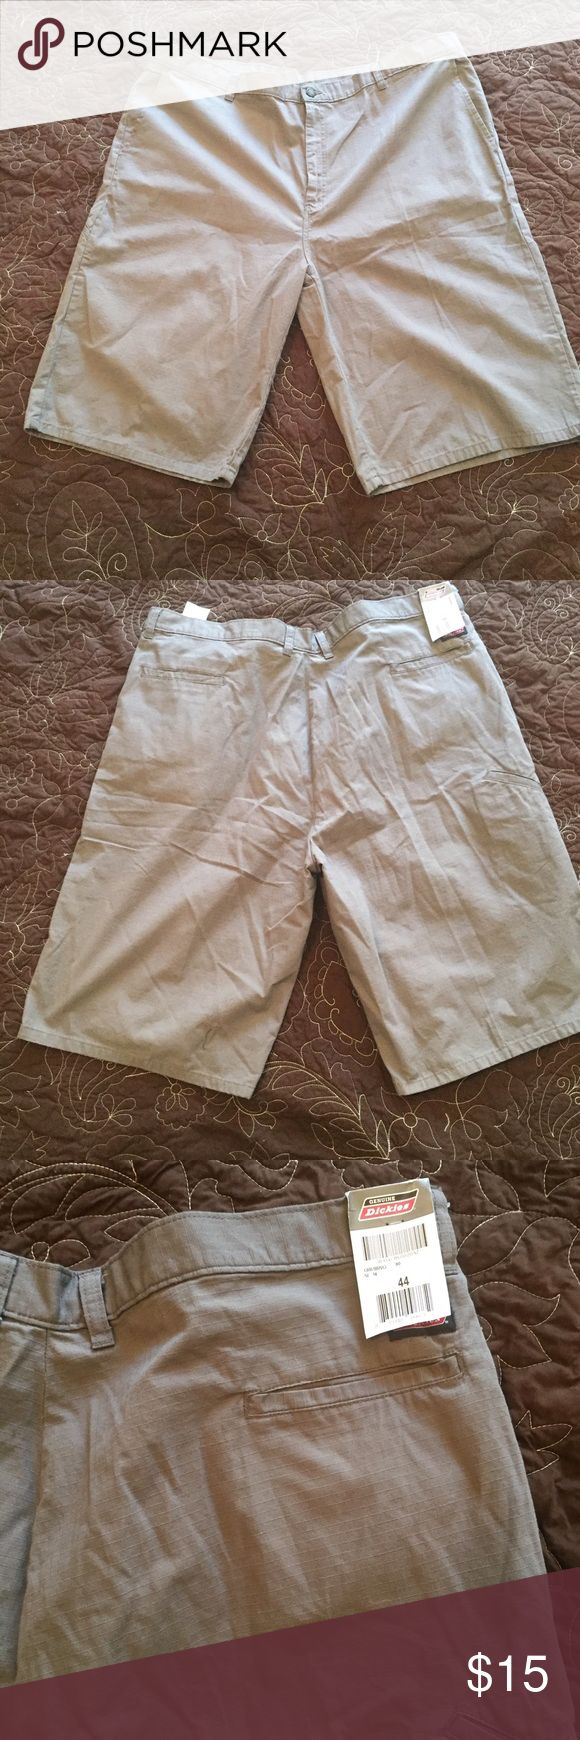 "Dickies Gray Shorts Size 44 414CB6 5 Pockets Work Dickies Gray Shorts Size 44 414CB6 5 Pockets Work Casual new with tags. Flat front Inseam 13"" Rise 14"" Dickies Shorts Flat Front"